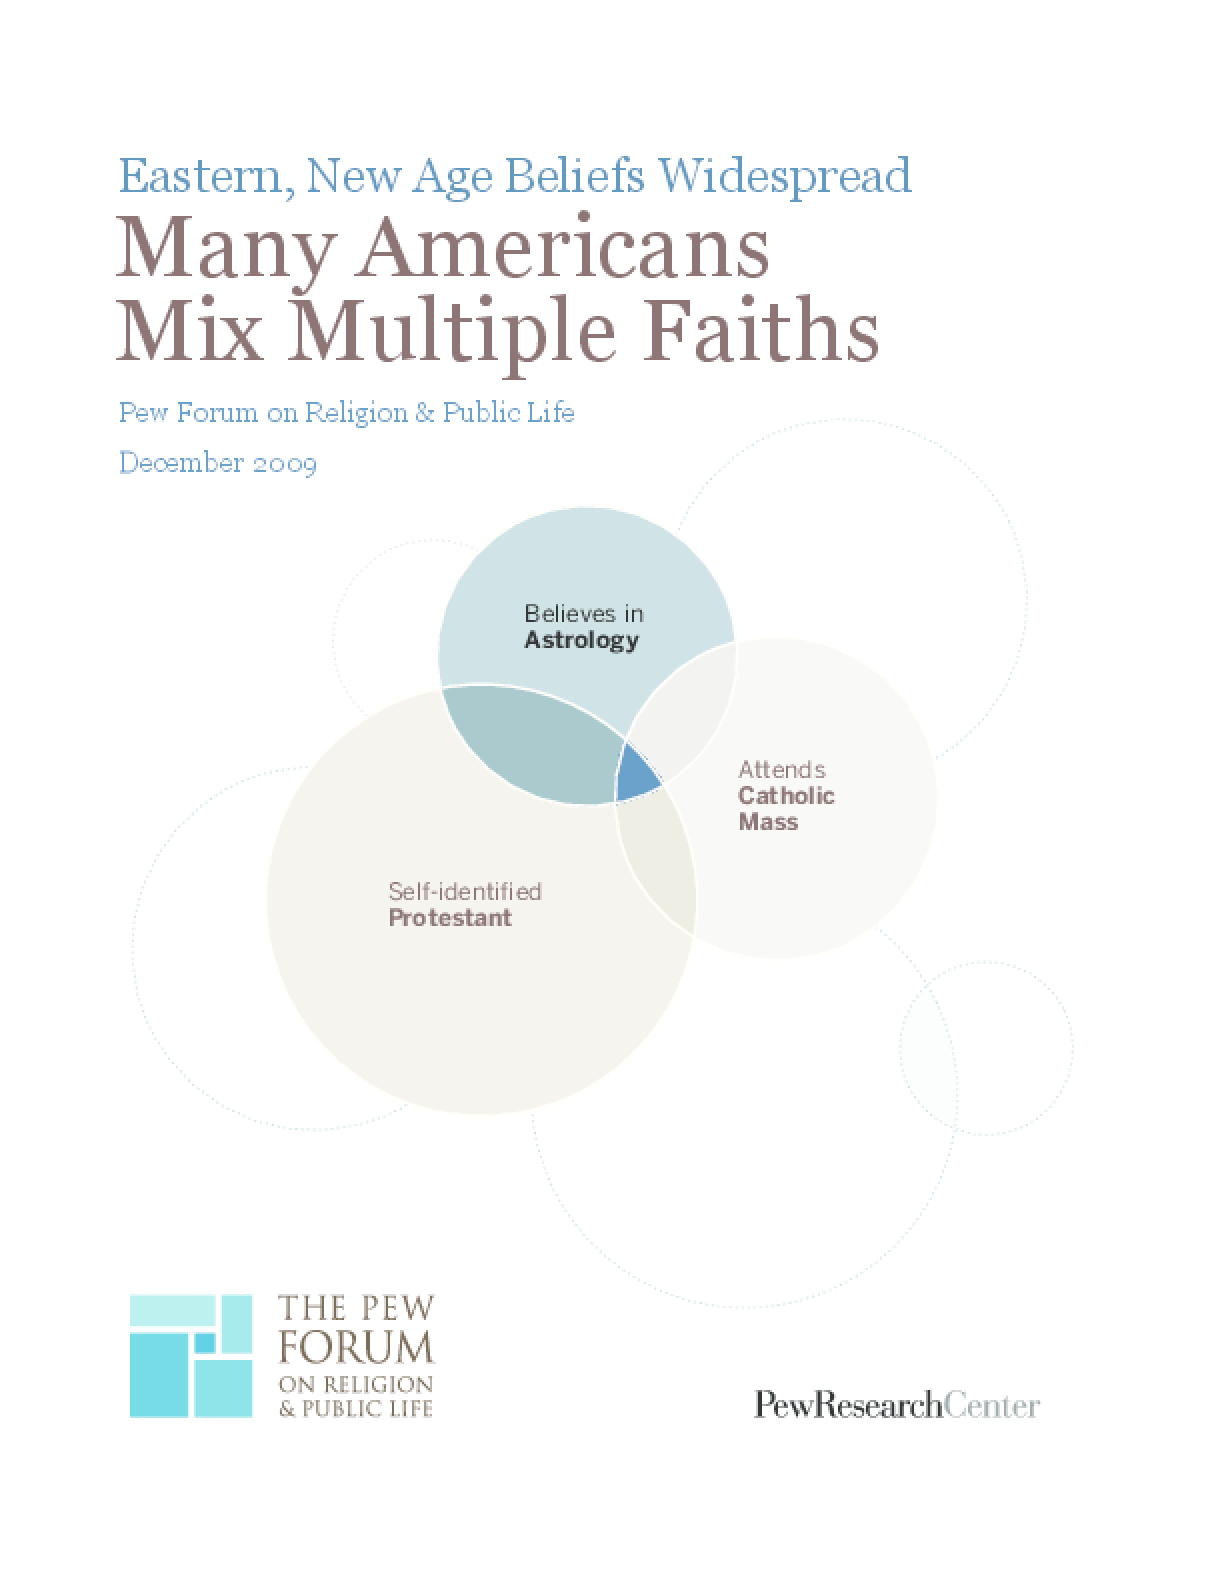 Many Americans Mix Multiple Faiths